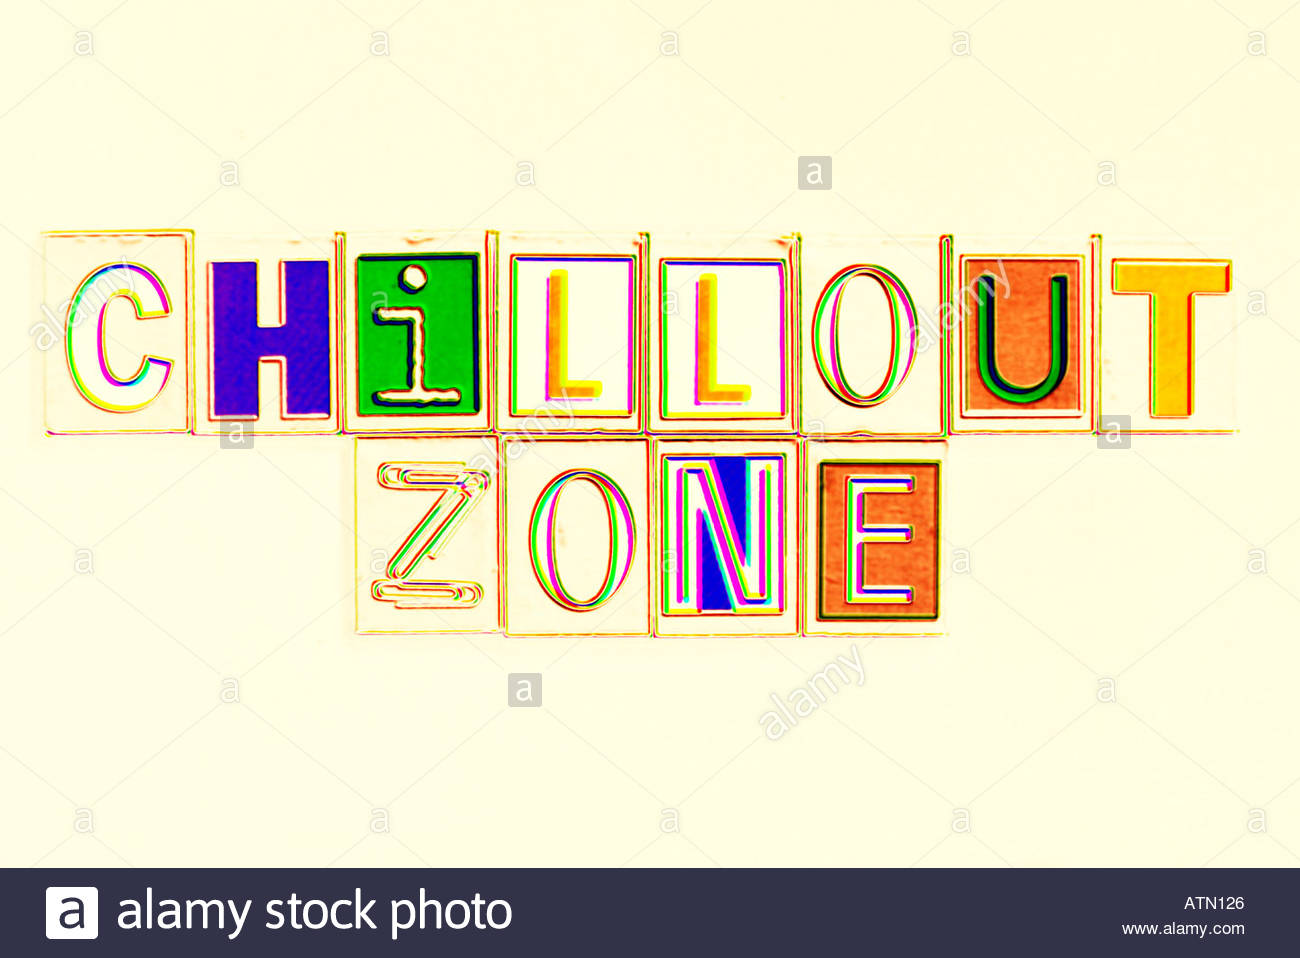 Chilloutzone Wohnzimmer Chill Out Zone Stockfotos Chill Out Zone Bilder Alamy